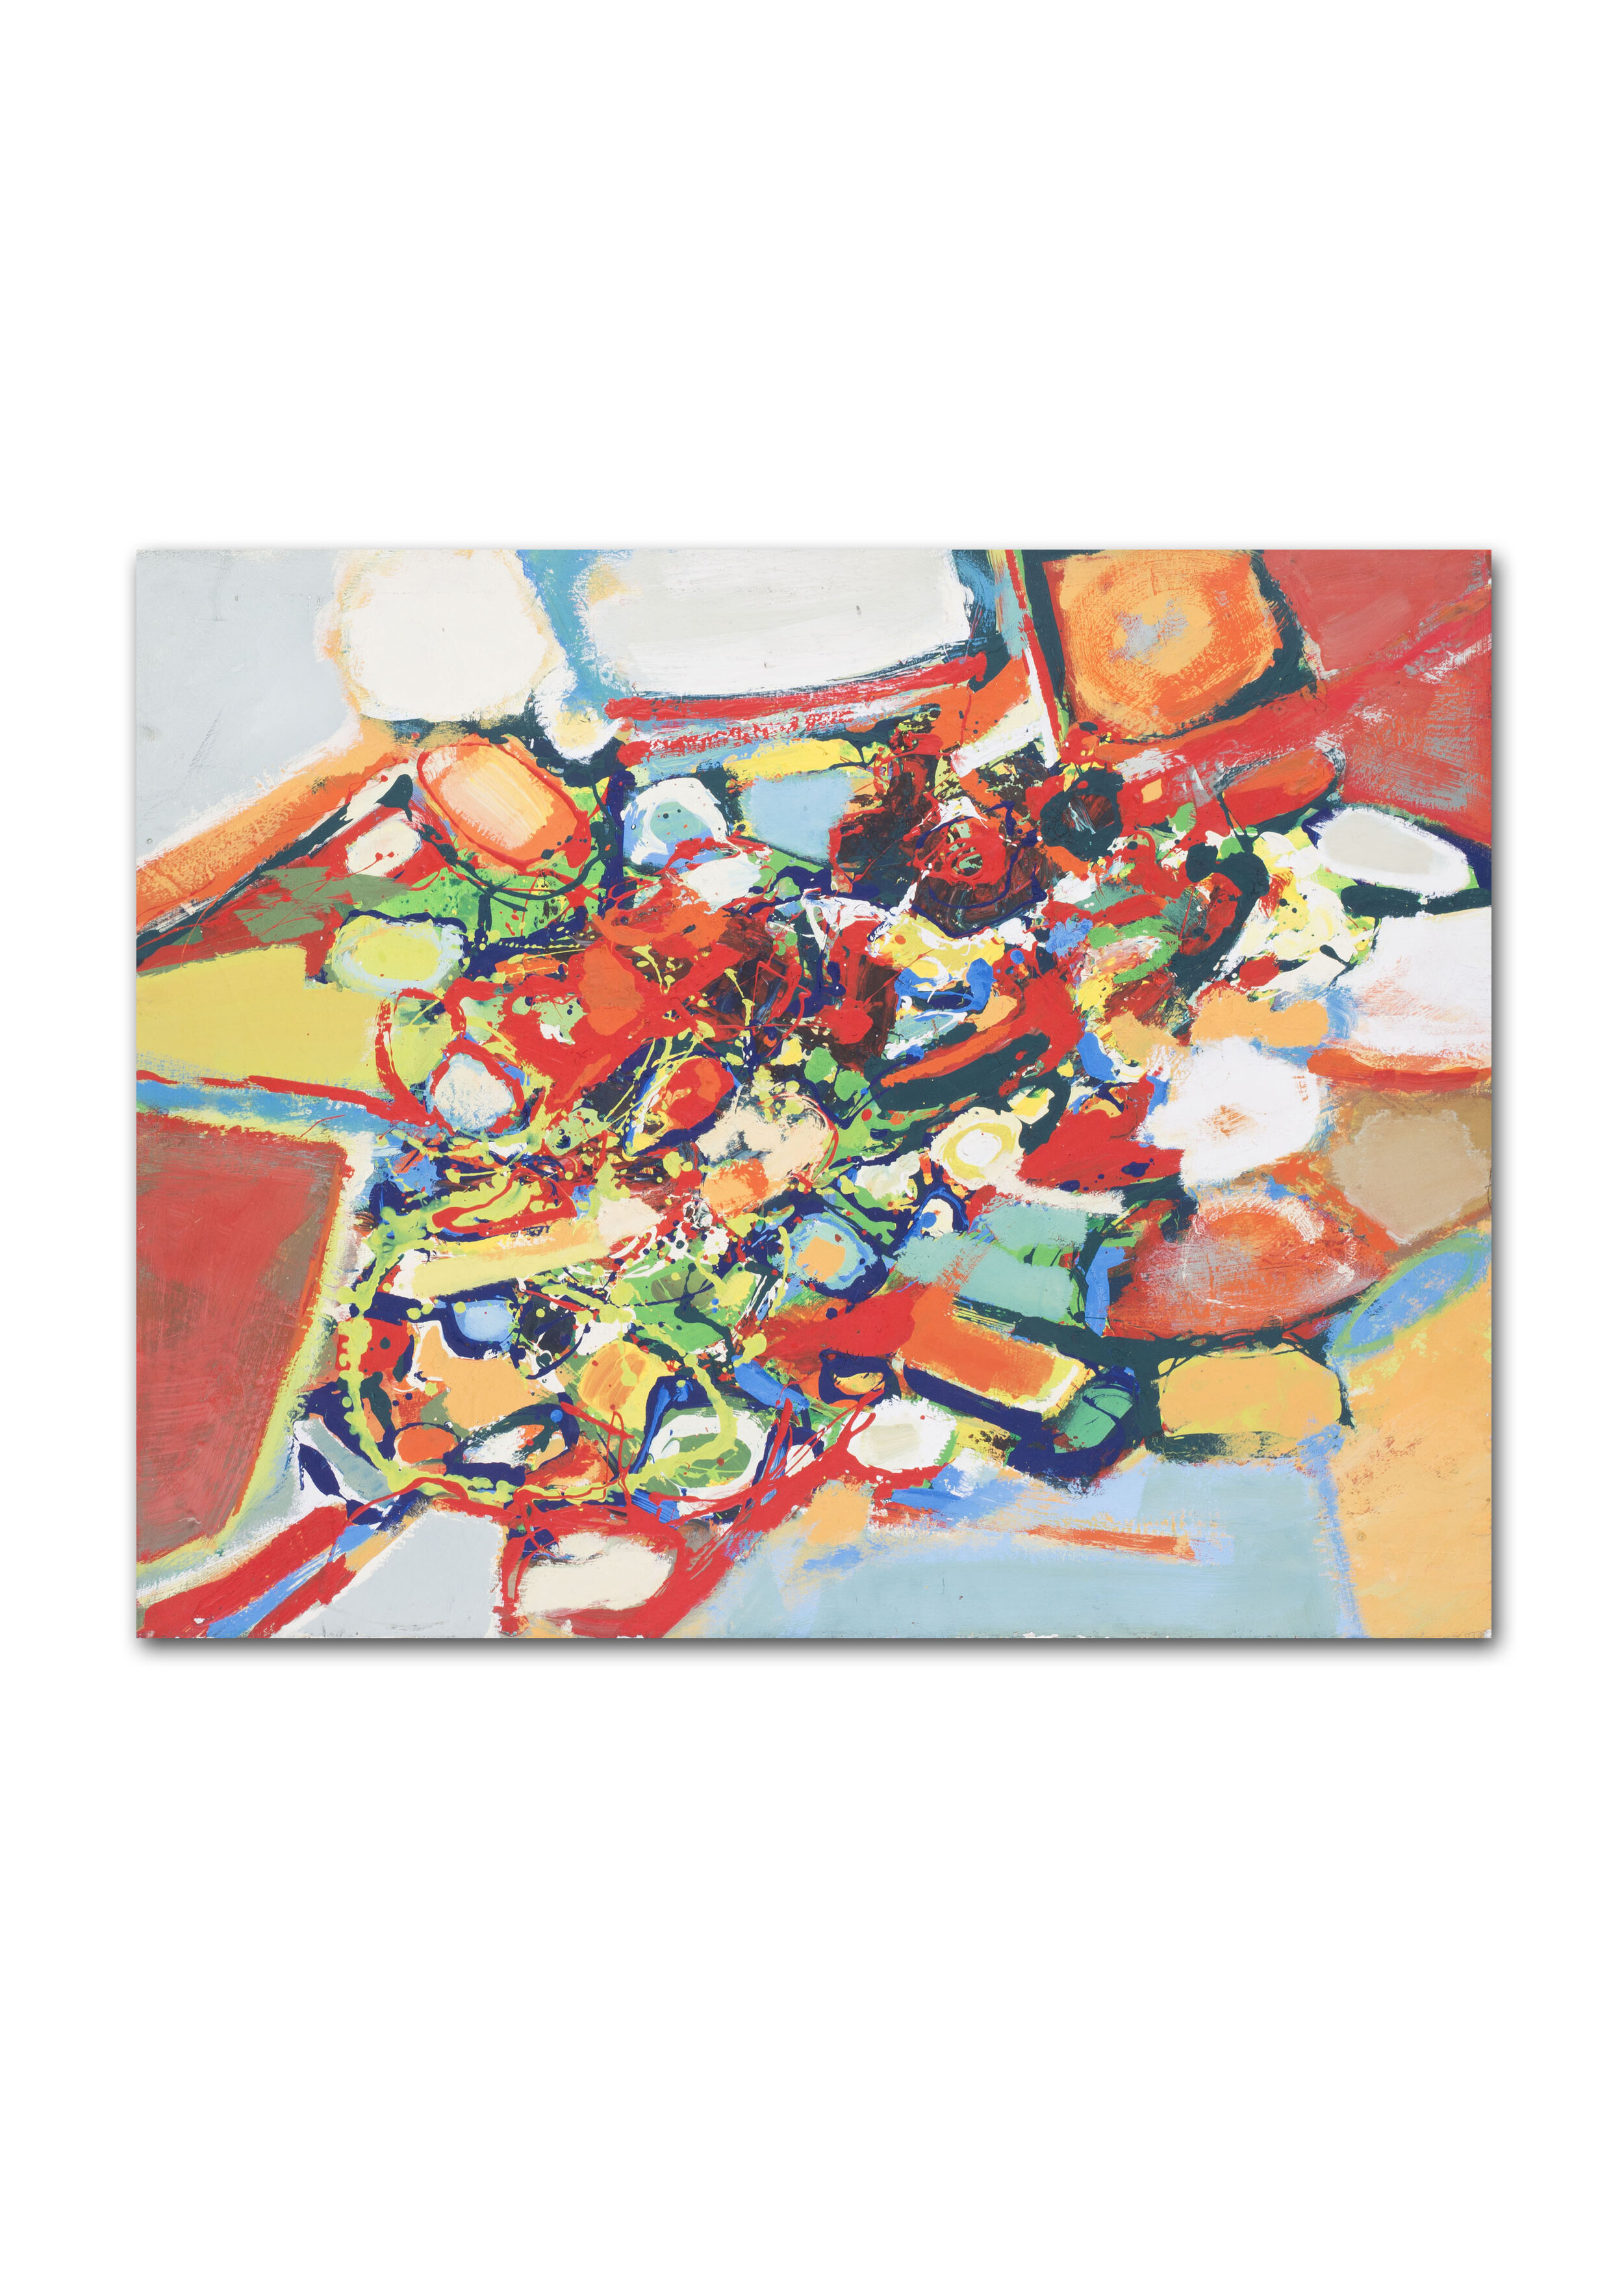 Joel Froment II    Reds, greens, blues and oranges   Price: £2,400